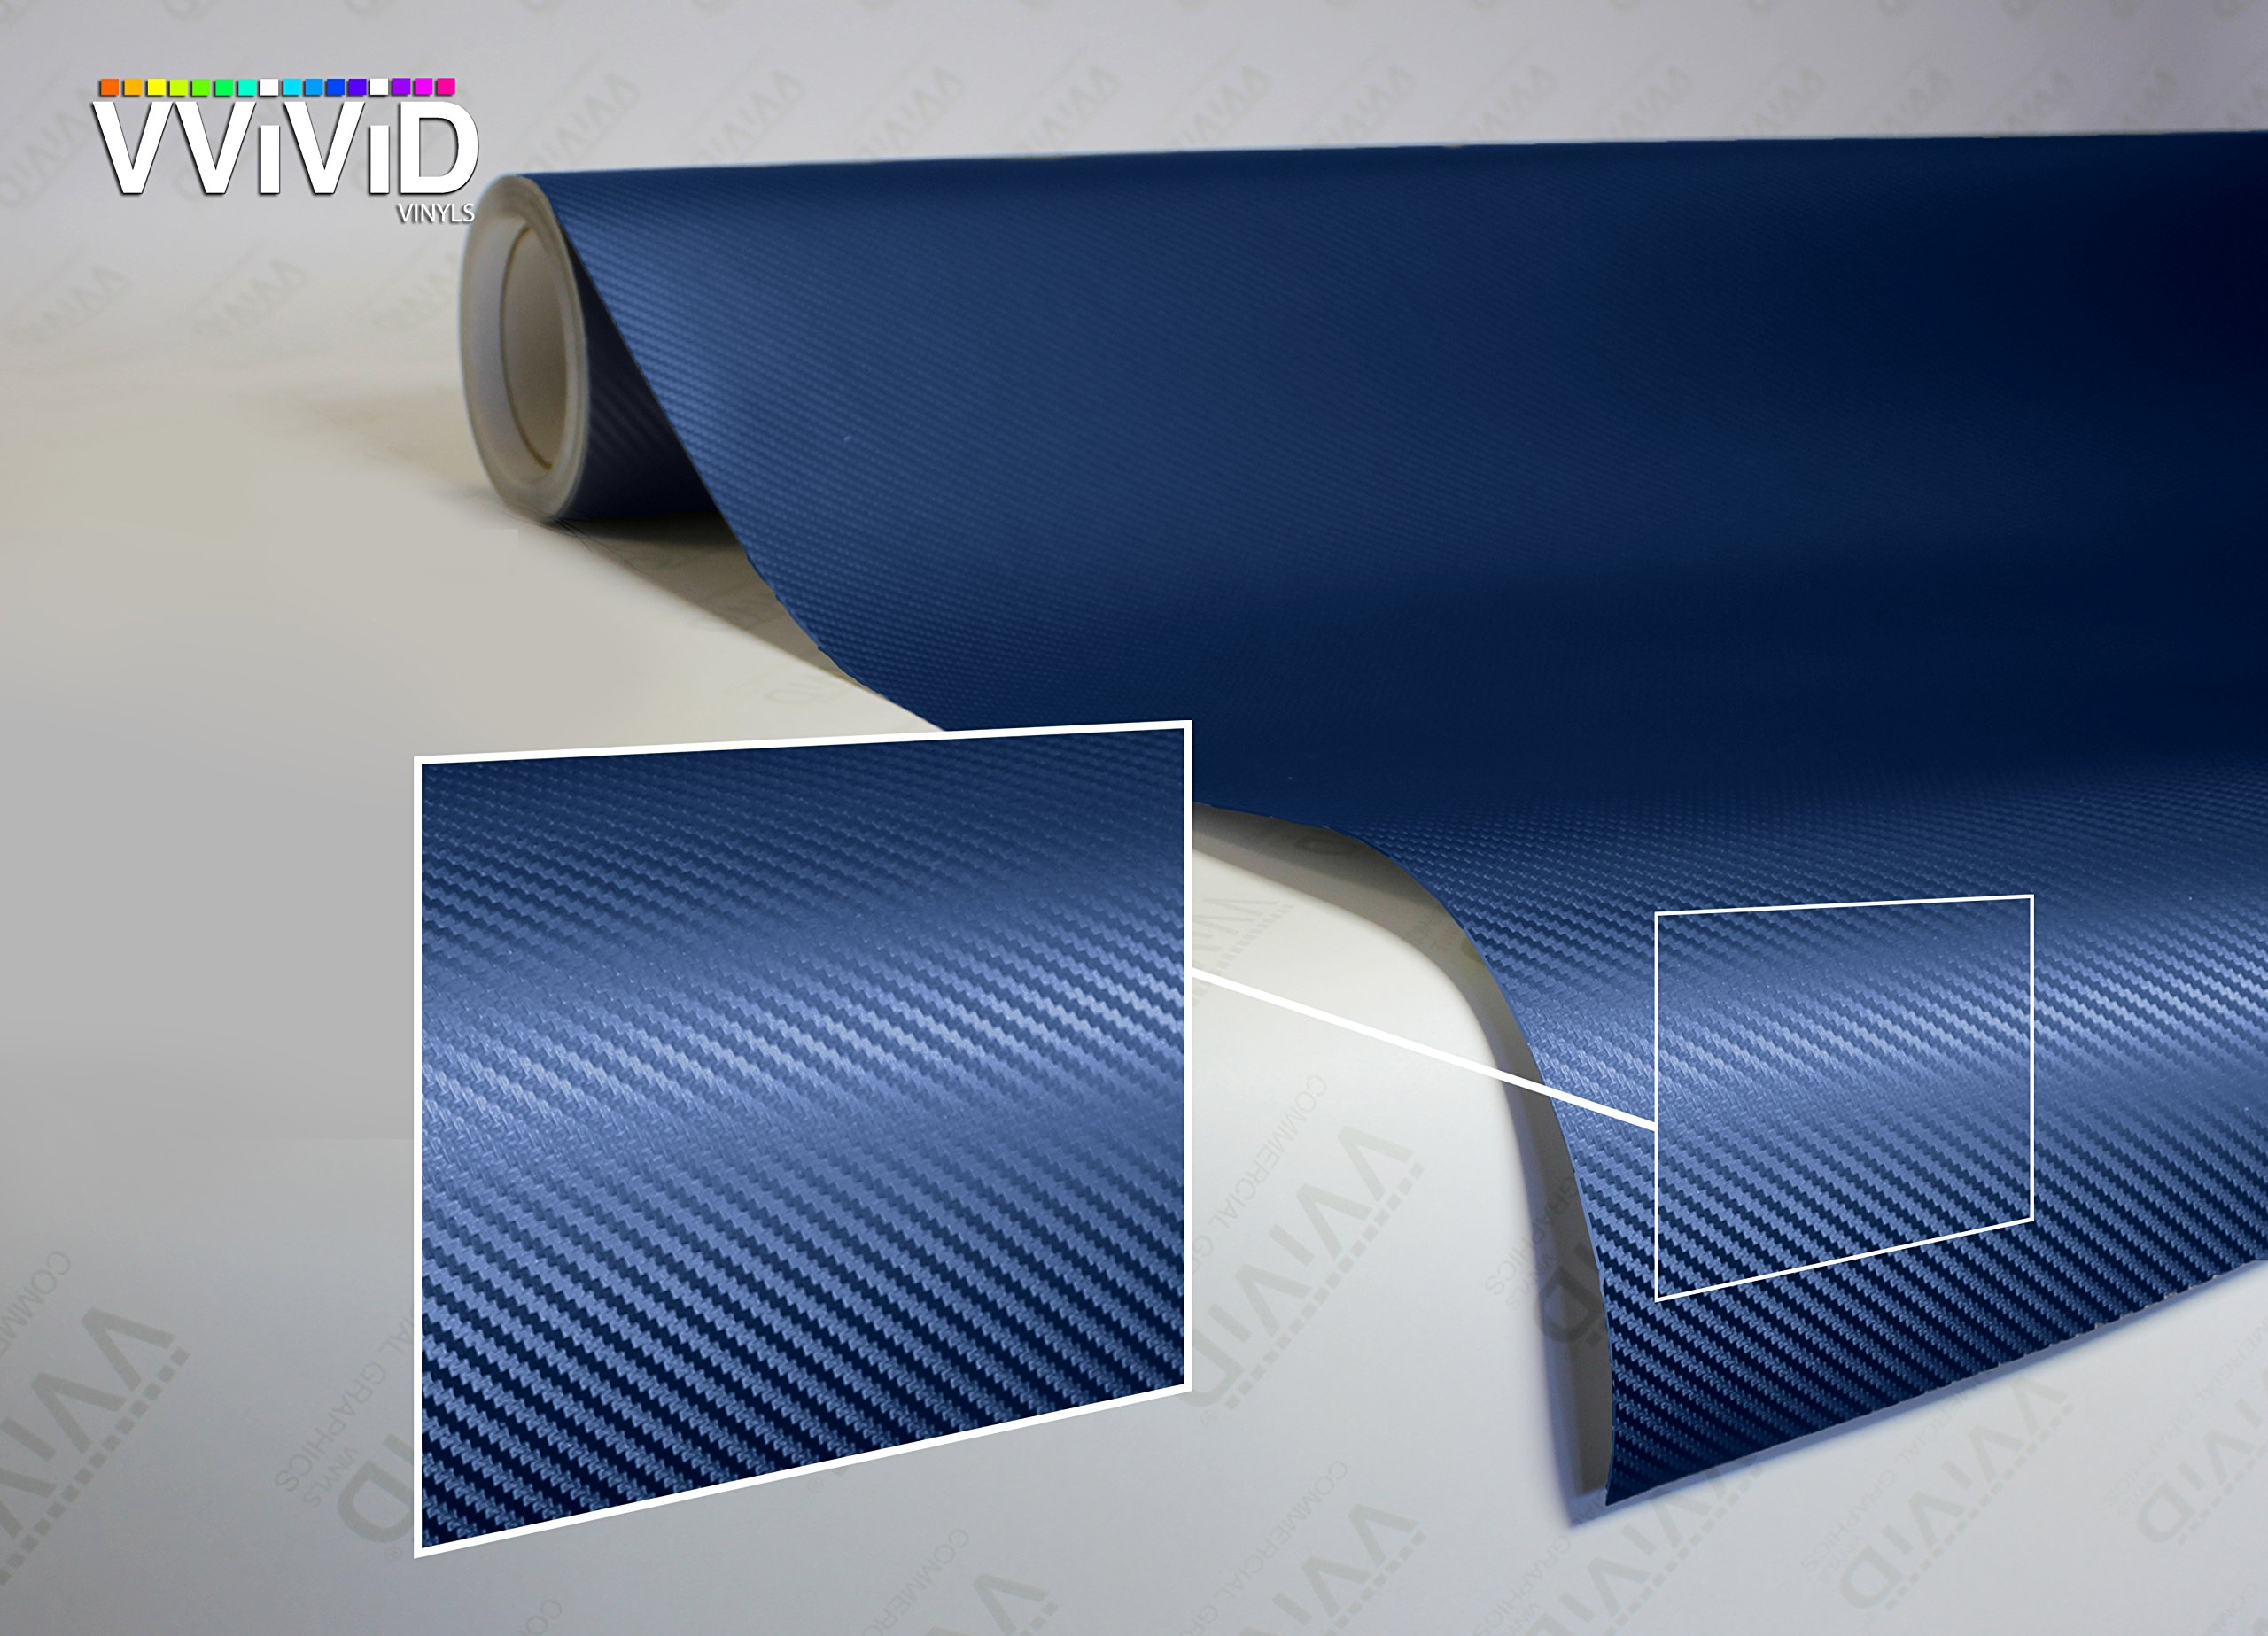 VViViD XPO Dry Navy Blue Carbon Fiber Vinyl Wrap Roll with Air Release Technology (50ft x 5ft)